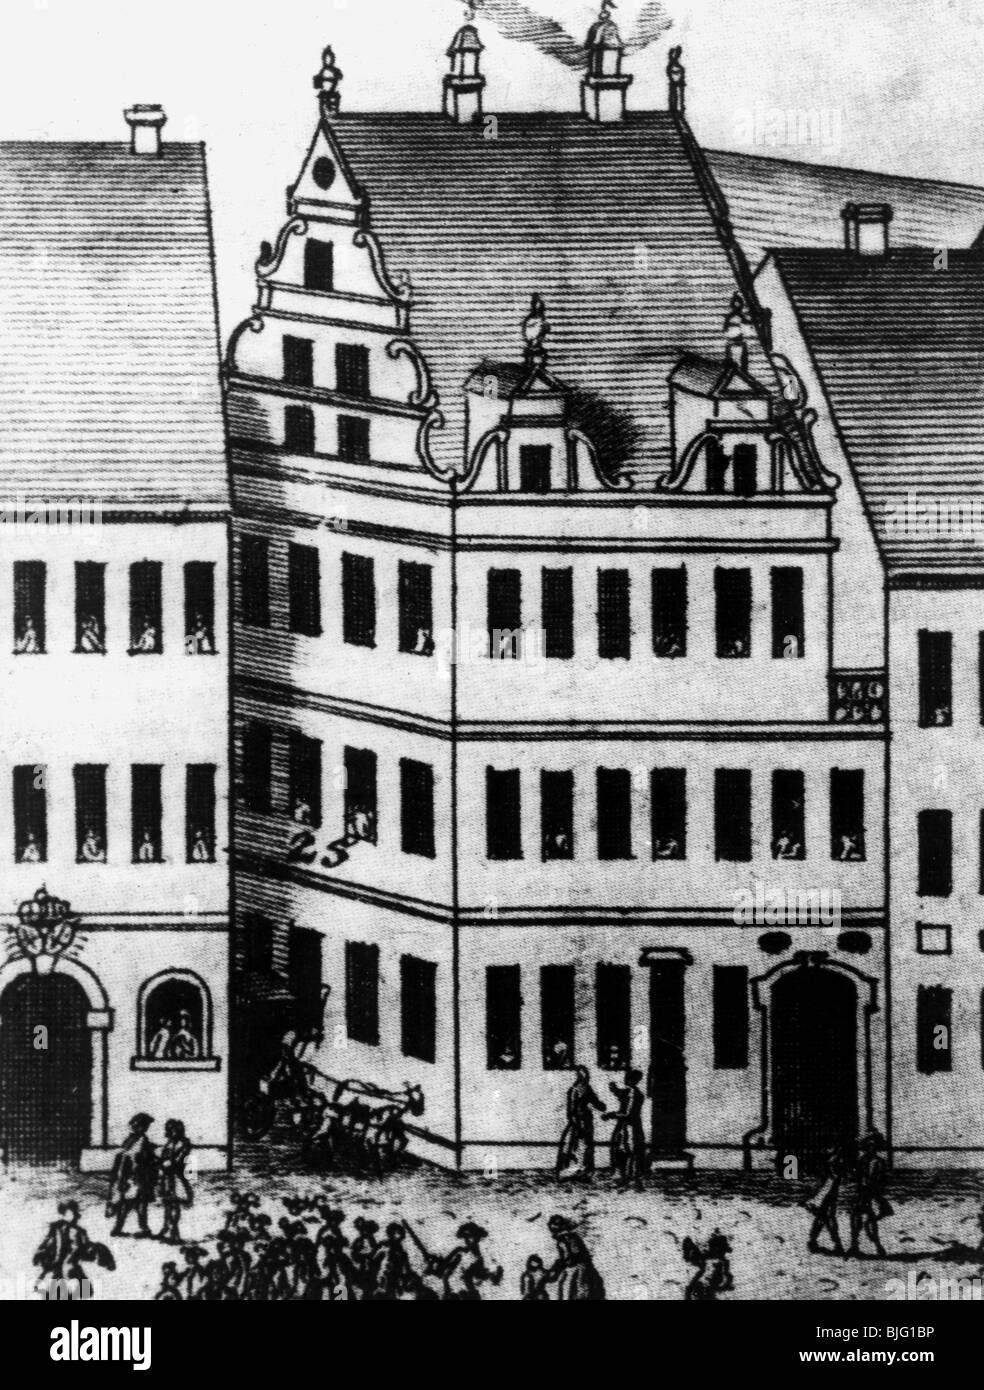 geography / travel, Germany, Wittenberg, house at the market, residence of Lucas Cranach the Elder, exterior view, - Stock Image